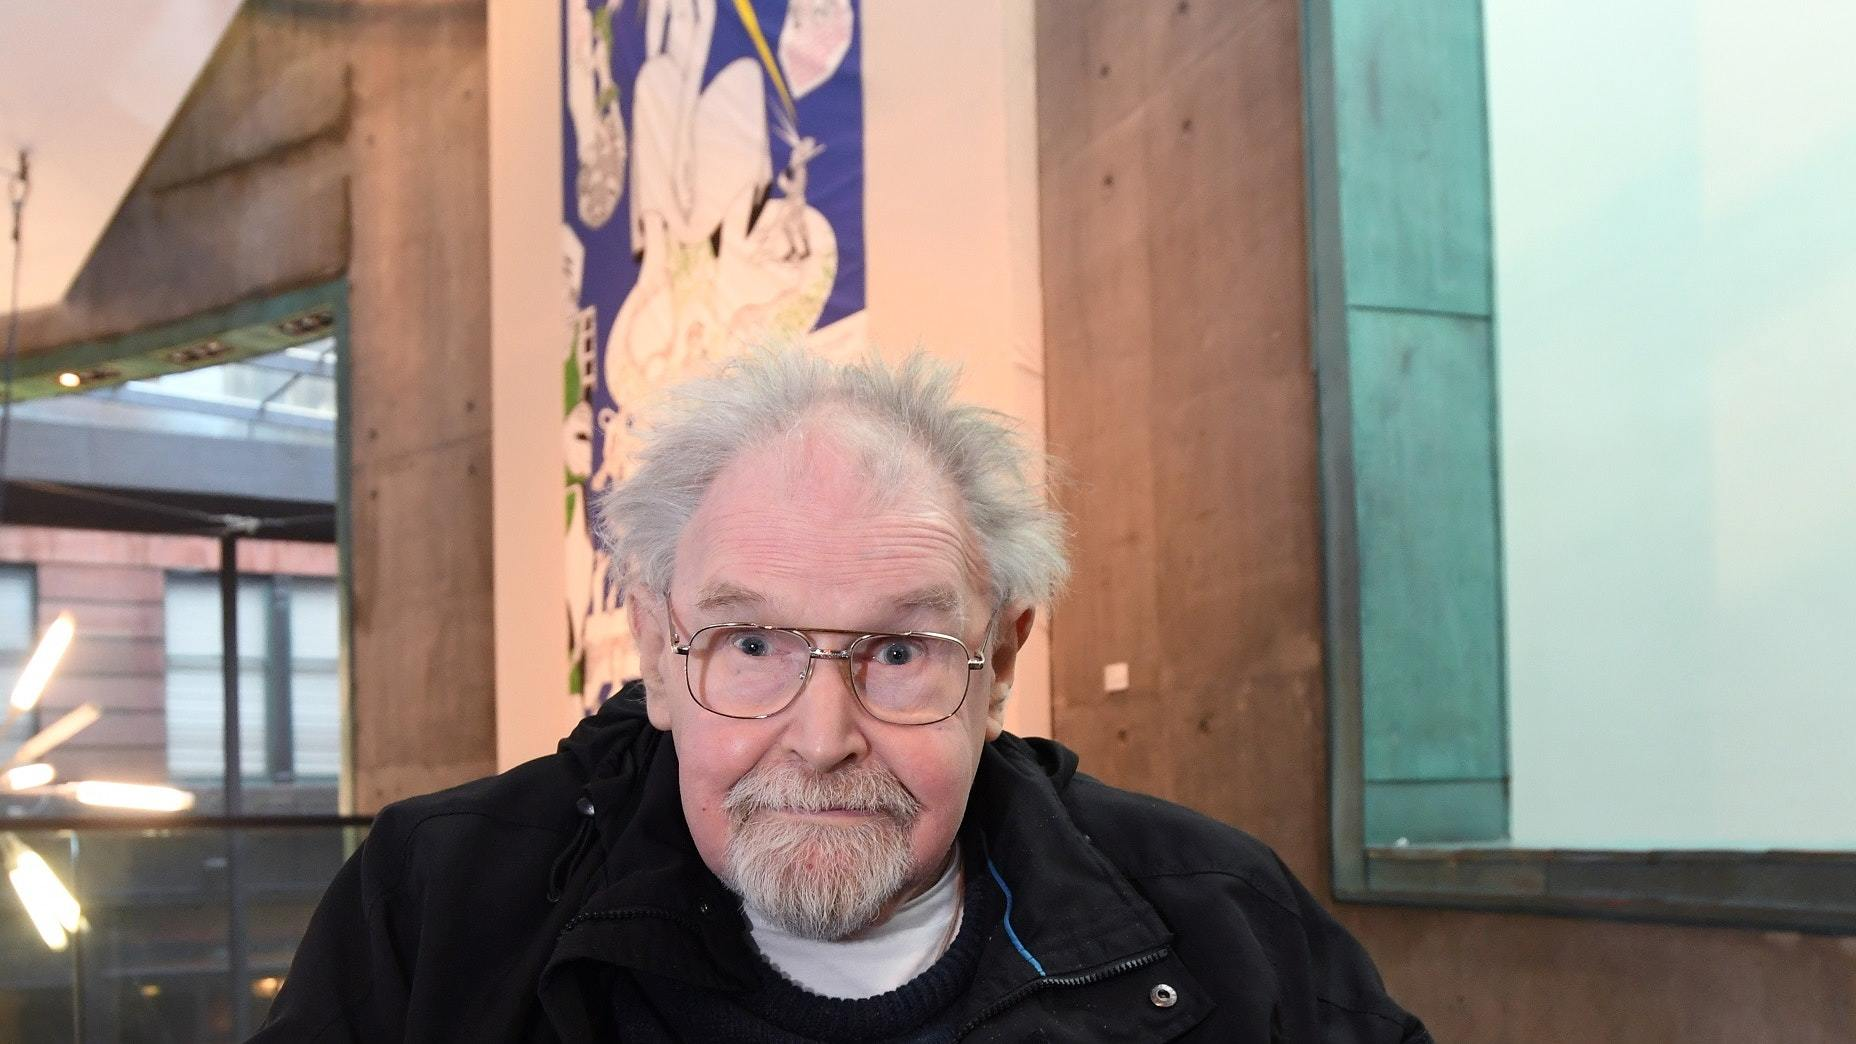 Alasdair Gray at the unveiling of the Facsimilization exhibition (Glasgow City Council/PA)